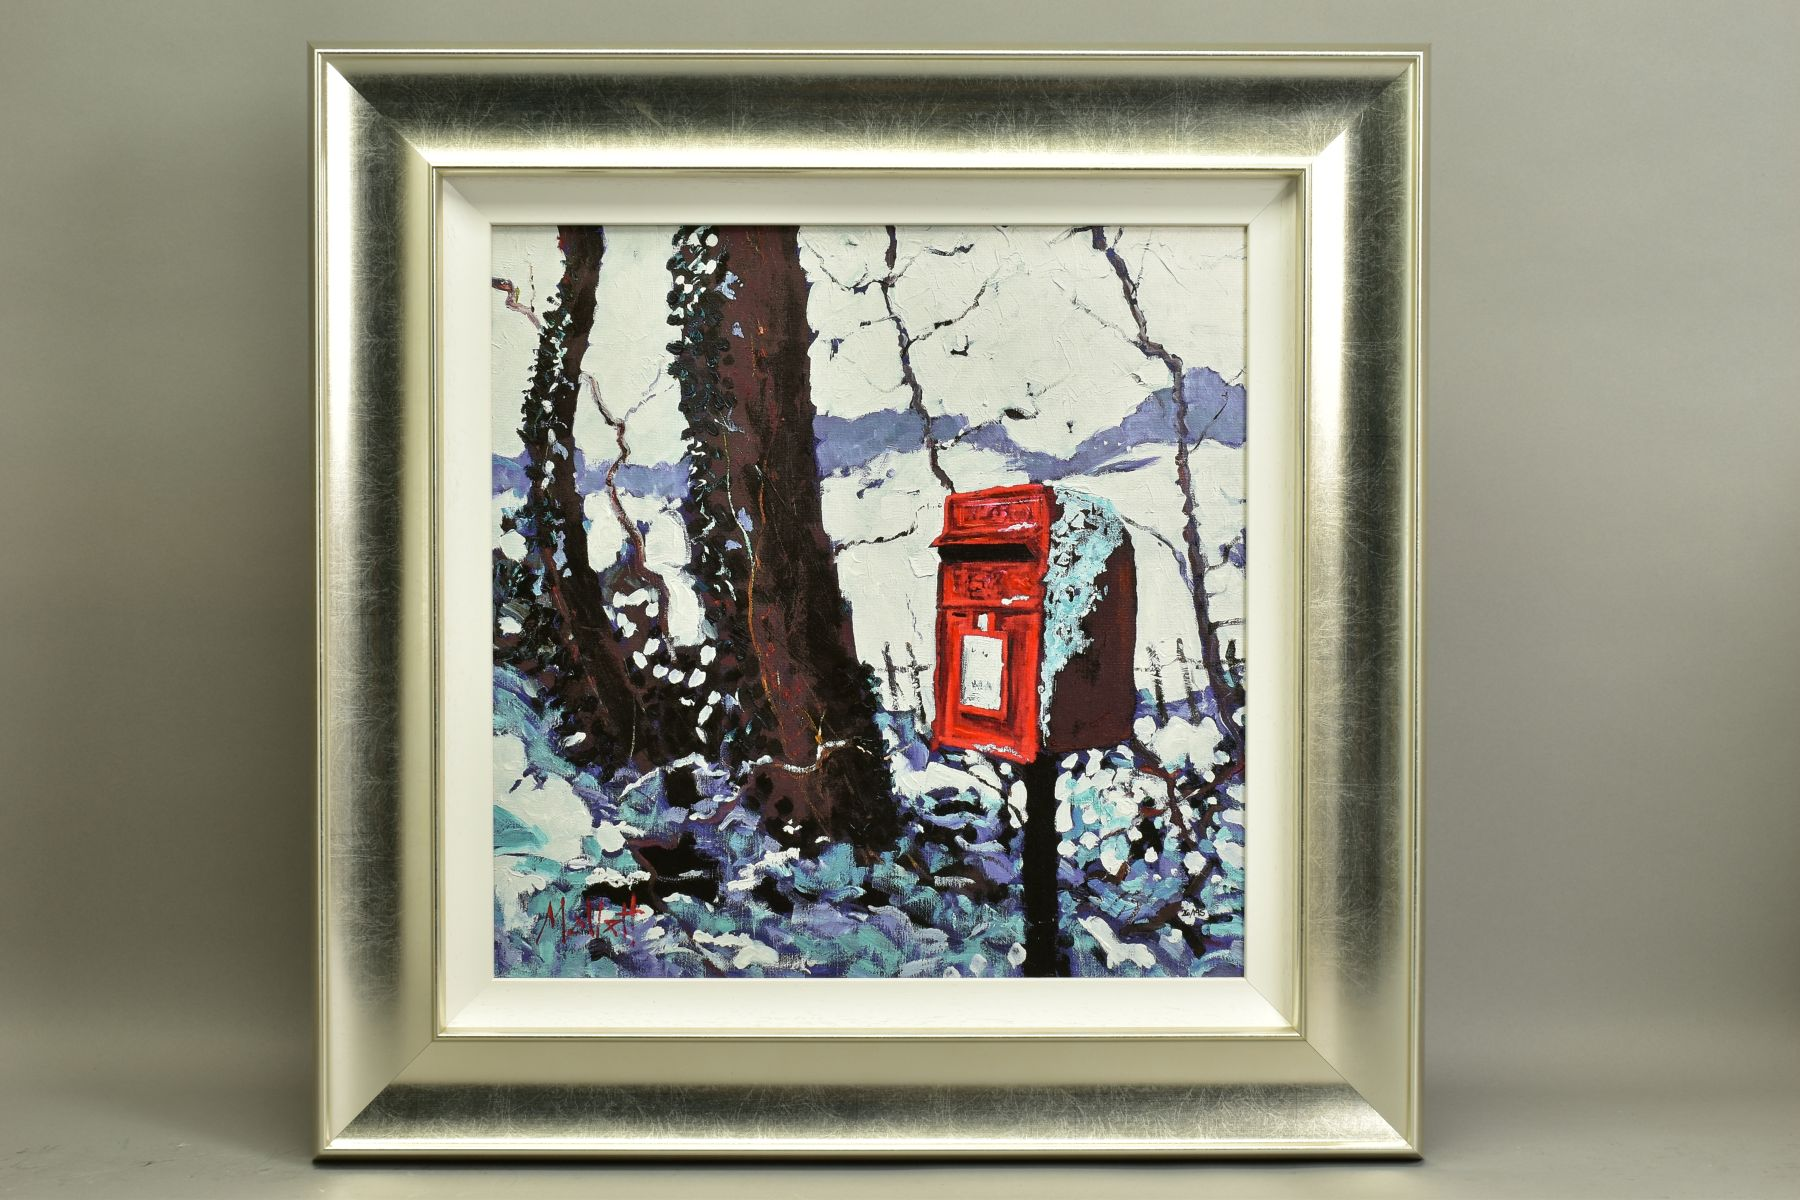 TIMMY MALLETT (BRITISH CONTEMPORARY), 'Snowy Post Box', a Limited Edition print, 26/195, signed